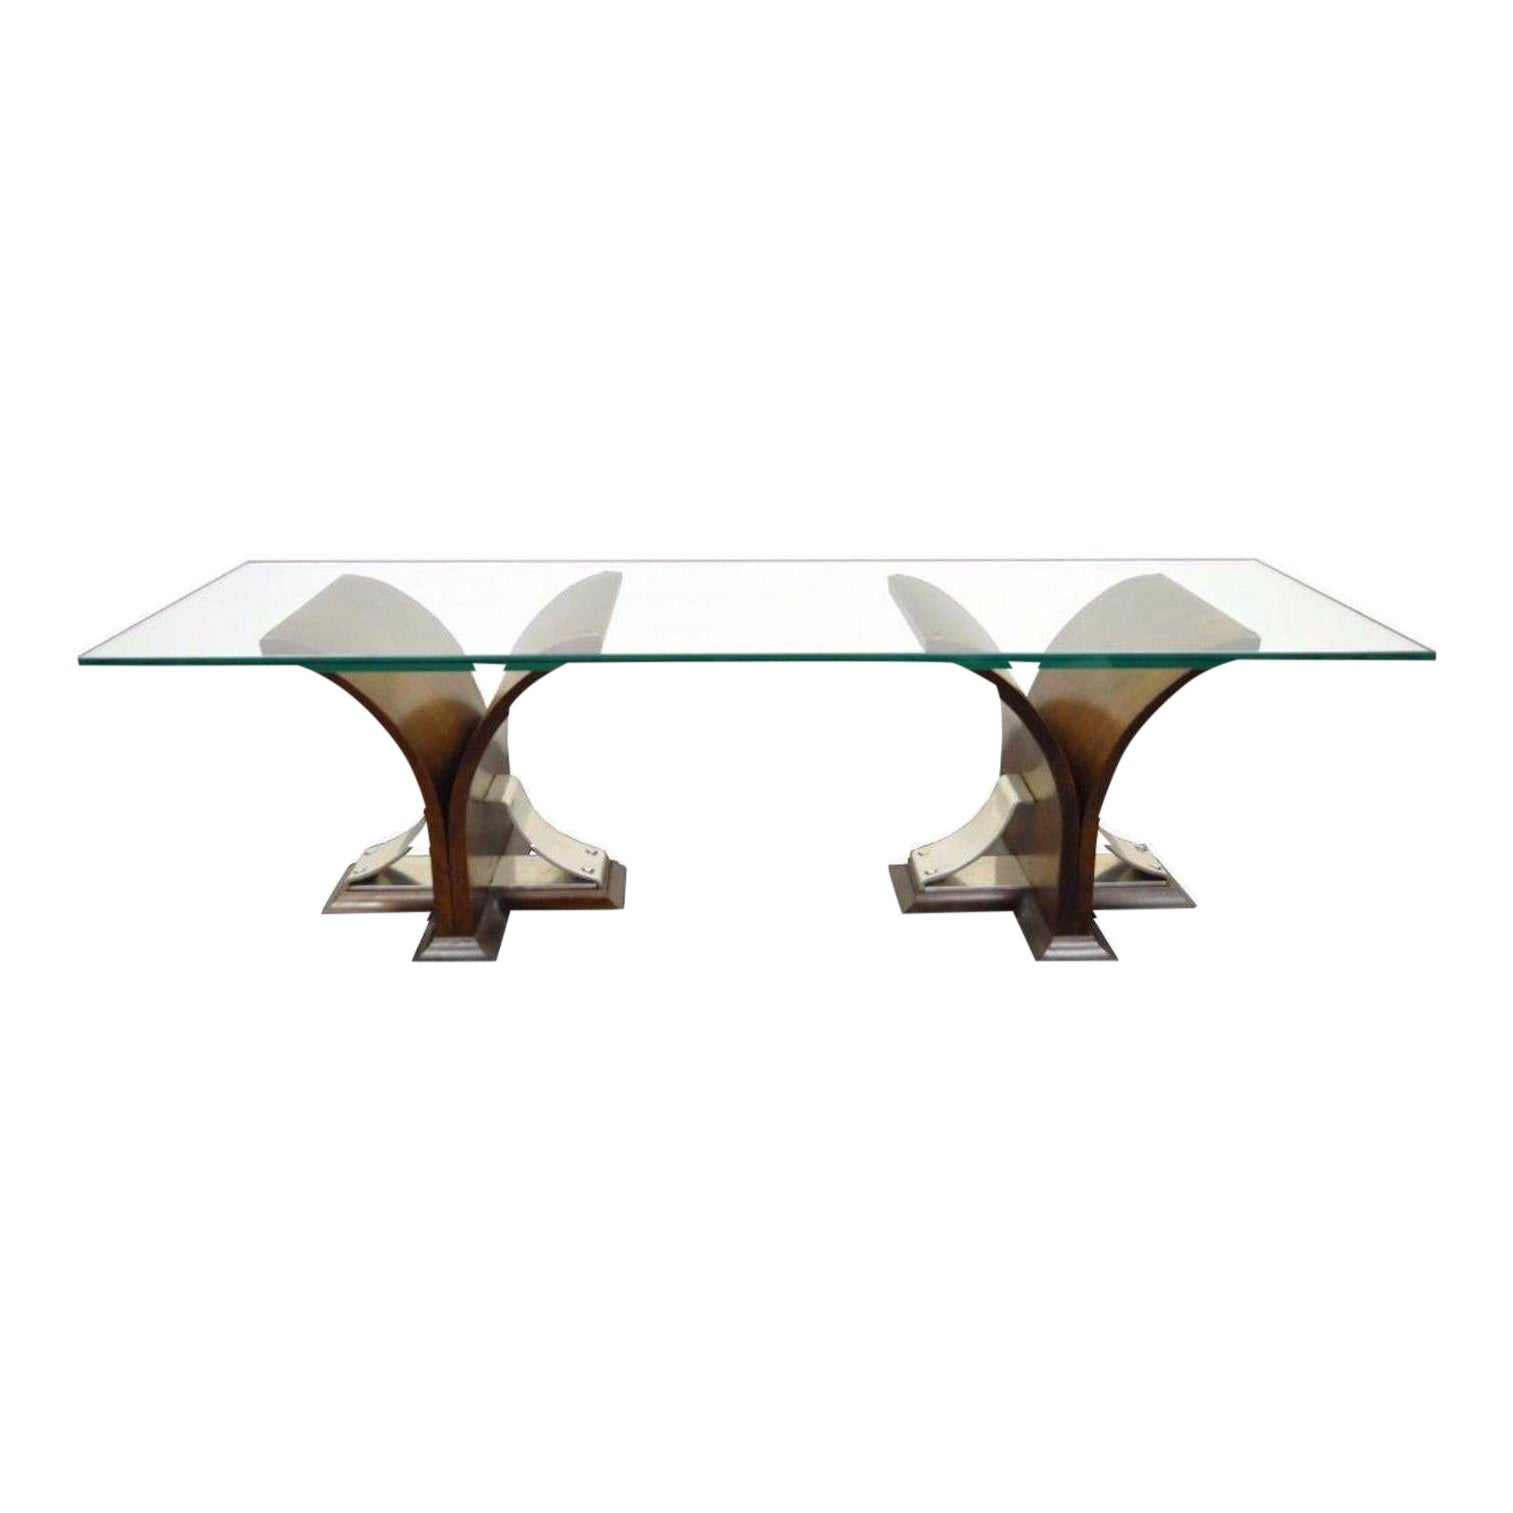 Vintage Mid Century Modern Sculptural Walnut Chrome Glass Coffee Table